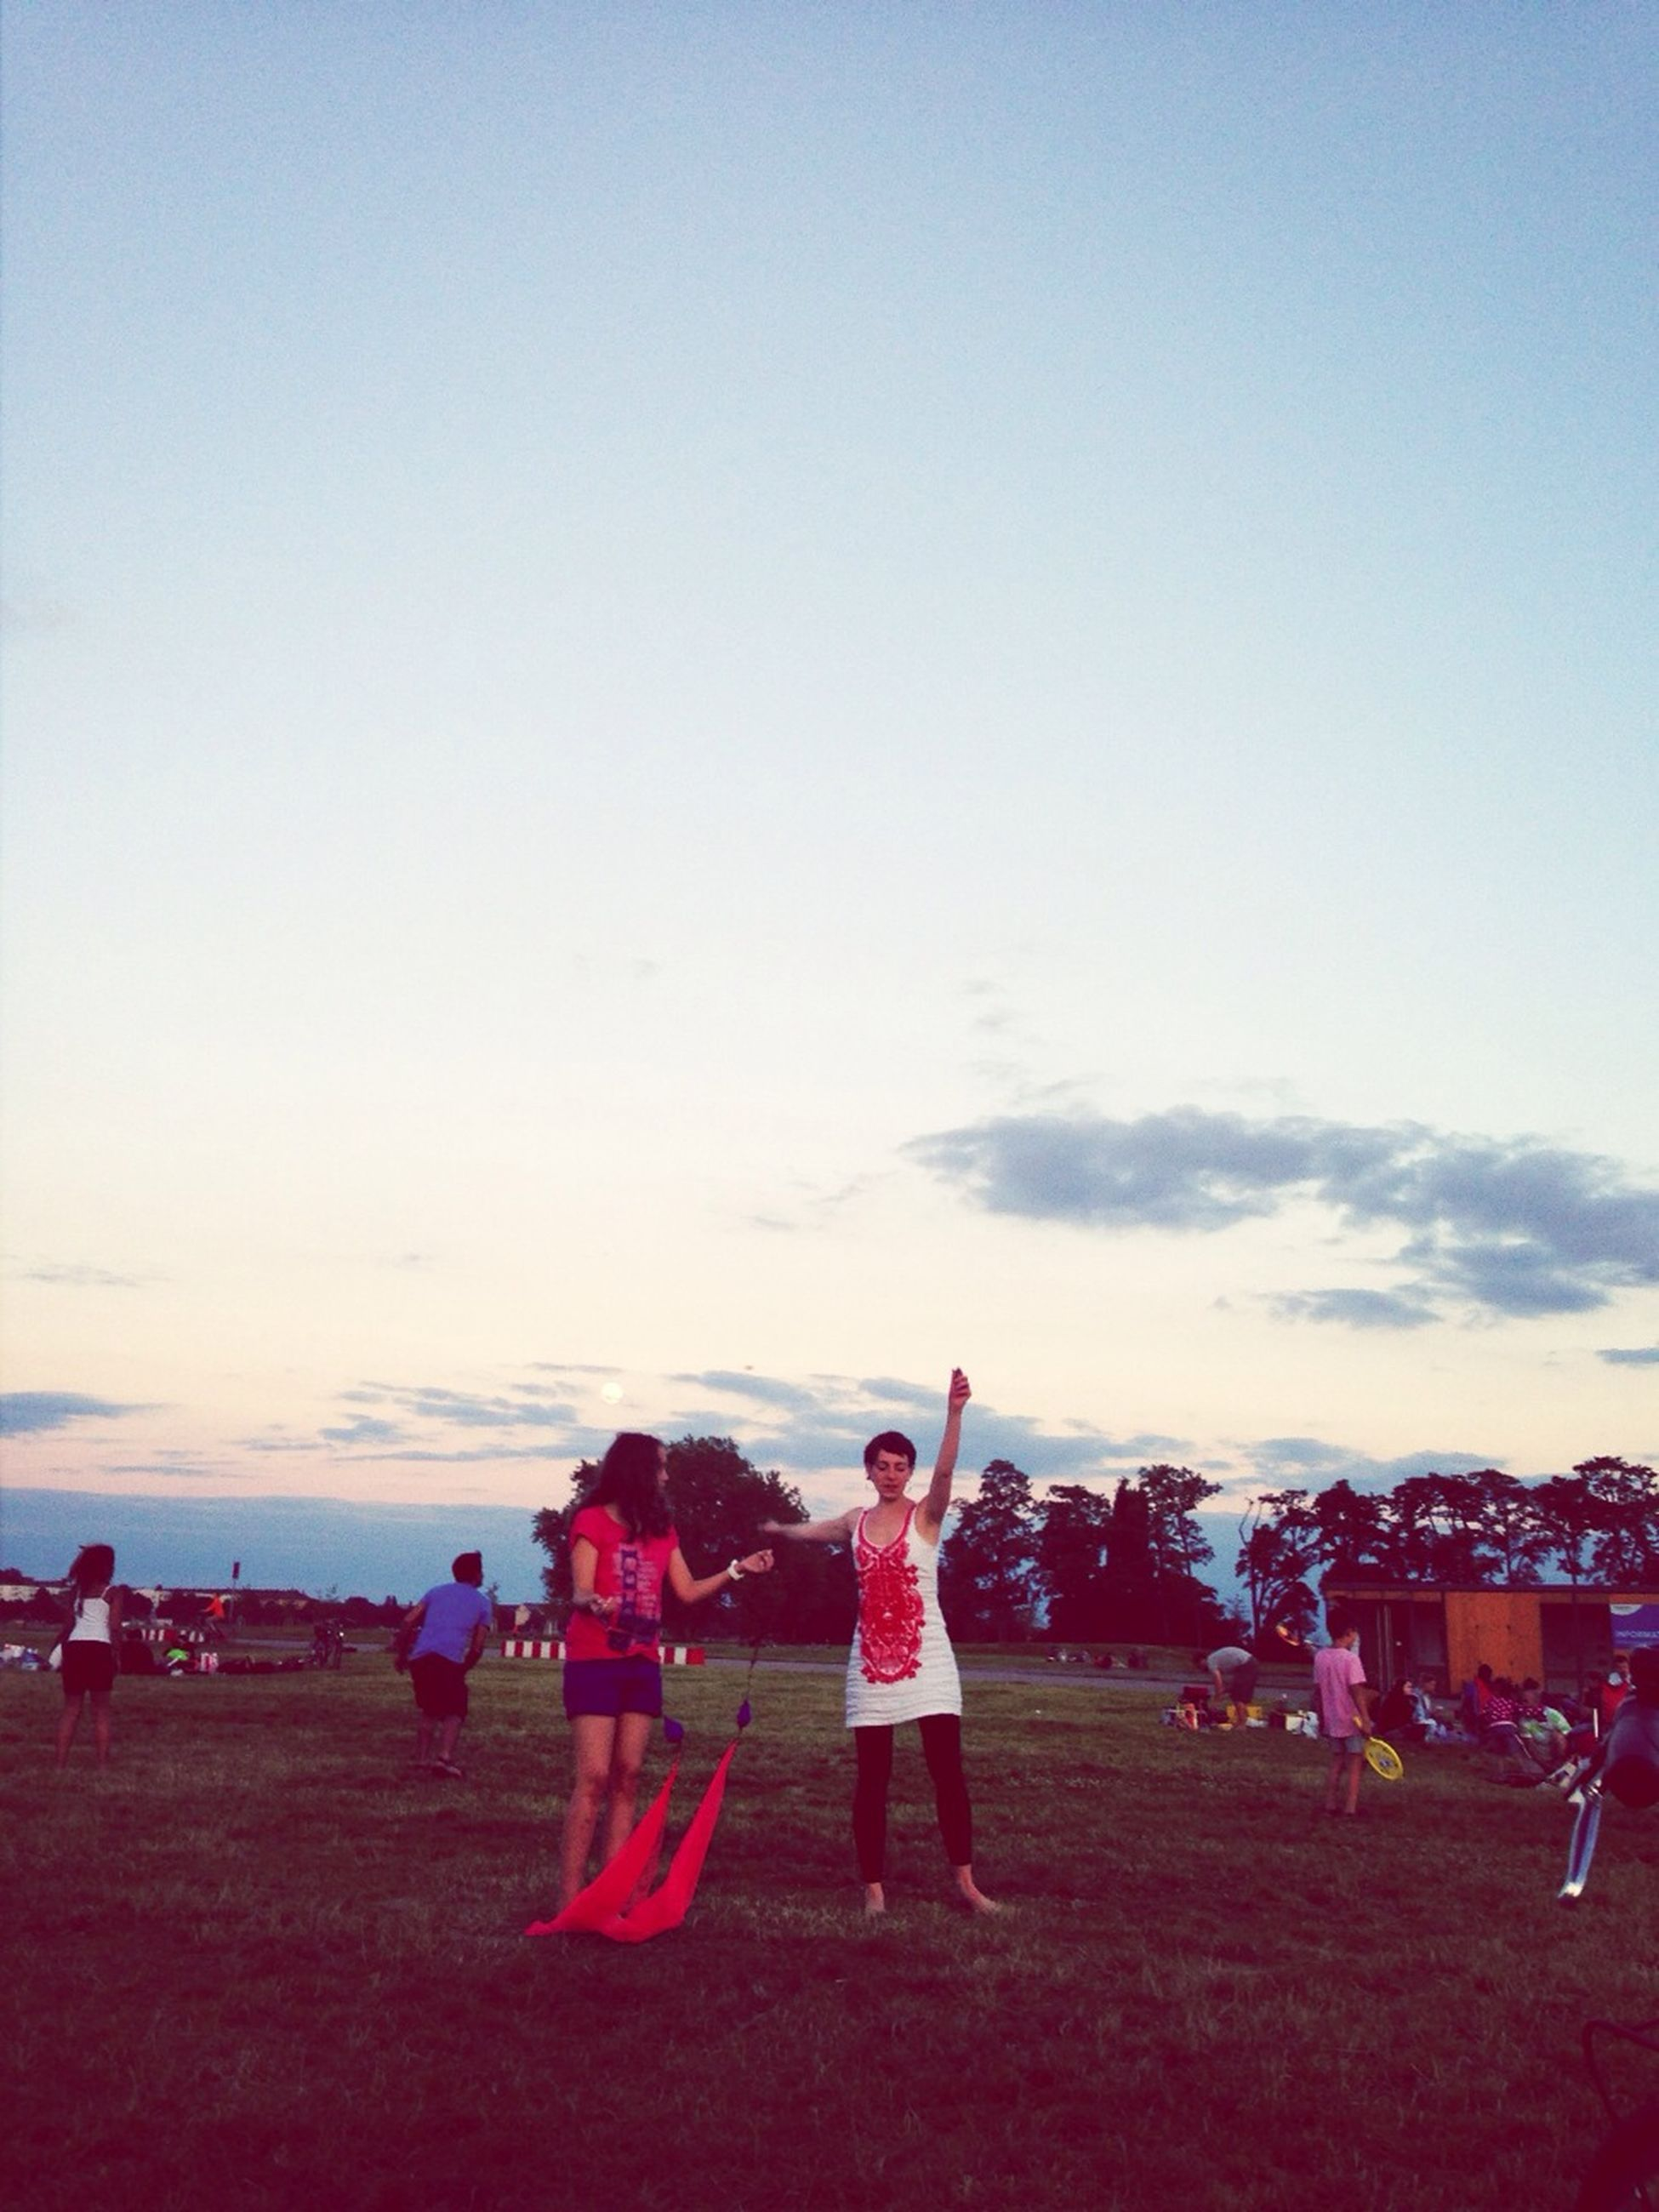 lifestyles, leisure activity, large group of people, sky, person, men, enjoyment, togetherness, full length, casual clothing, fun, copy space, field, childhood, girls, cloud - sky, landscape, mixed age range, grass